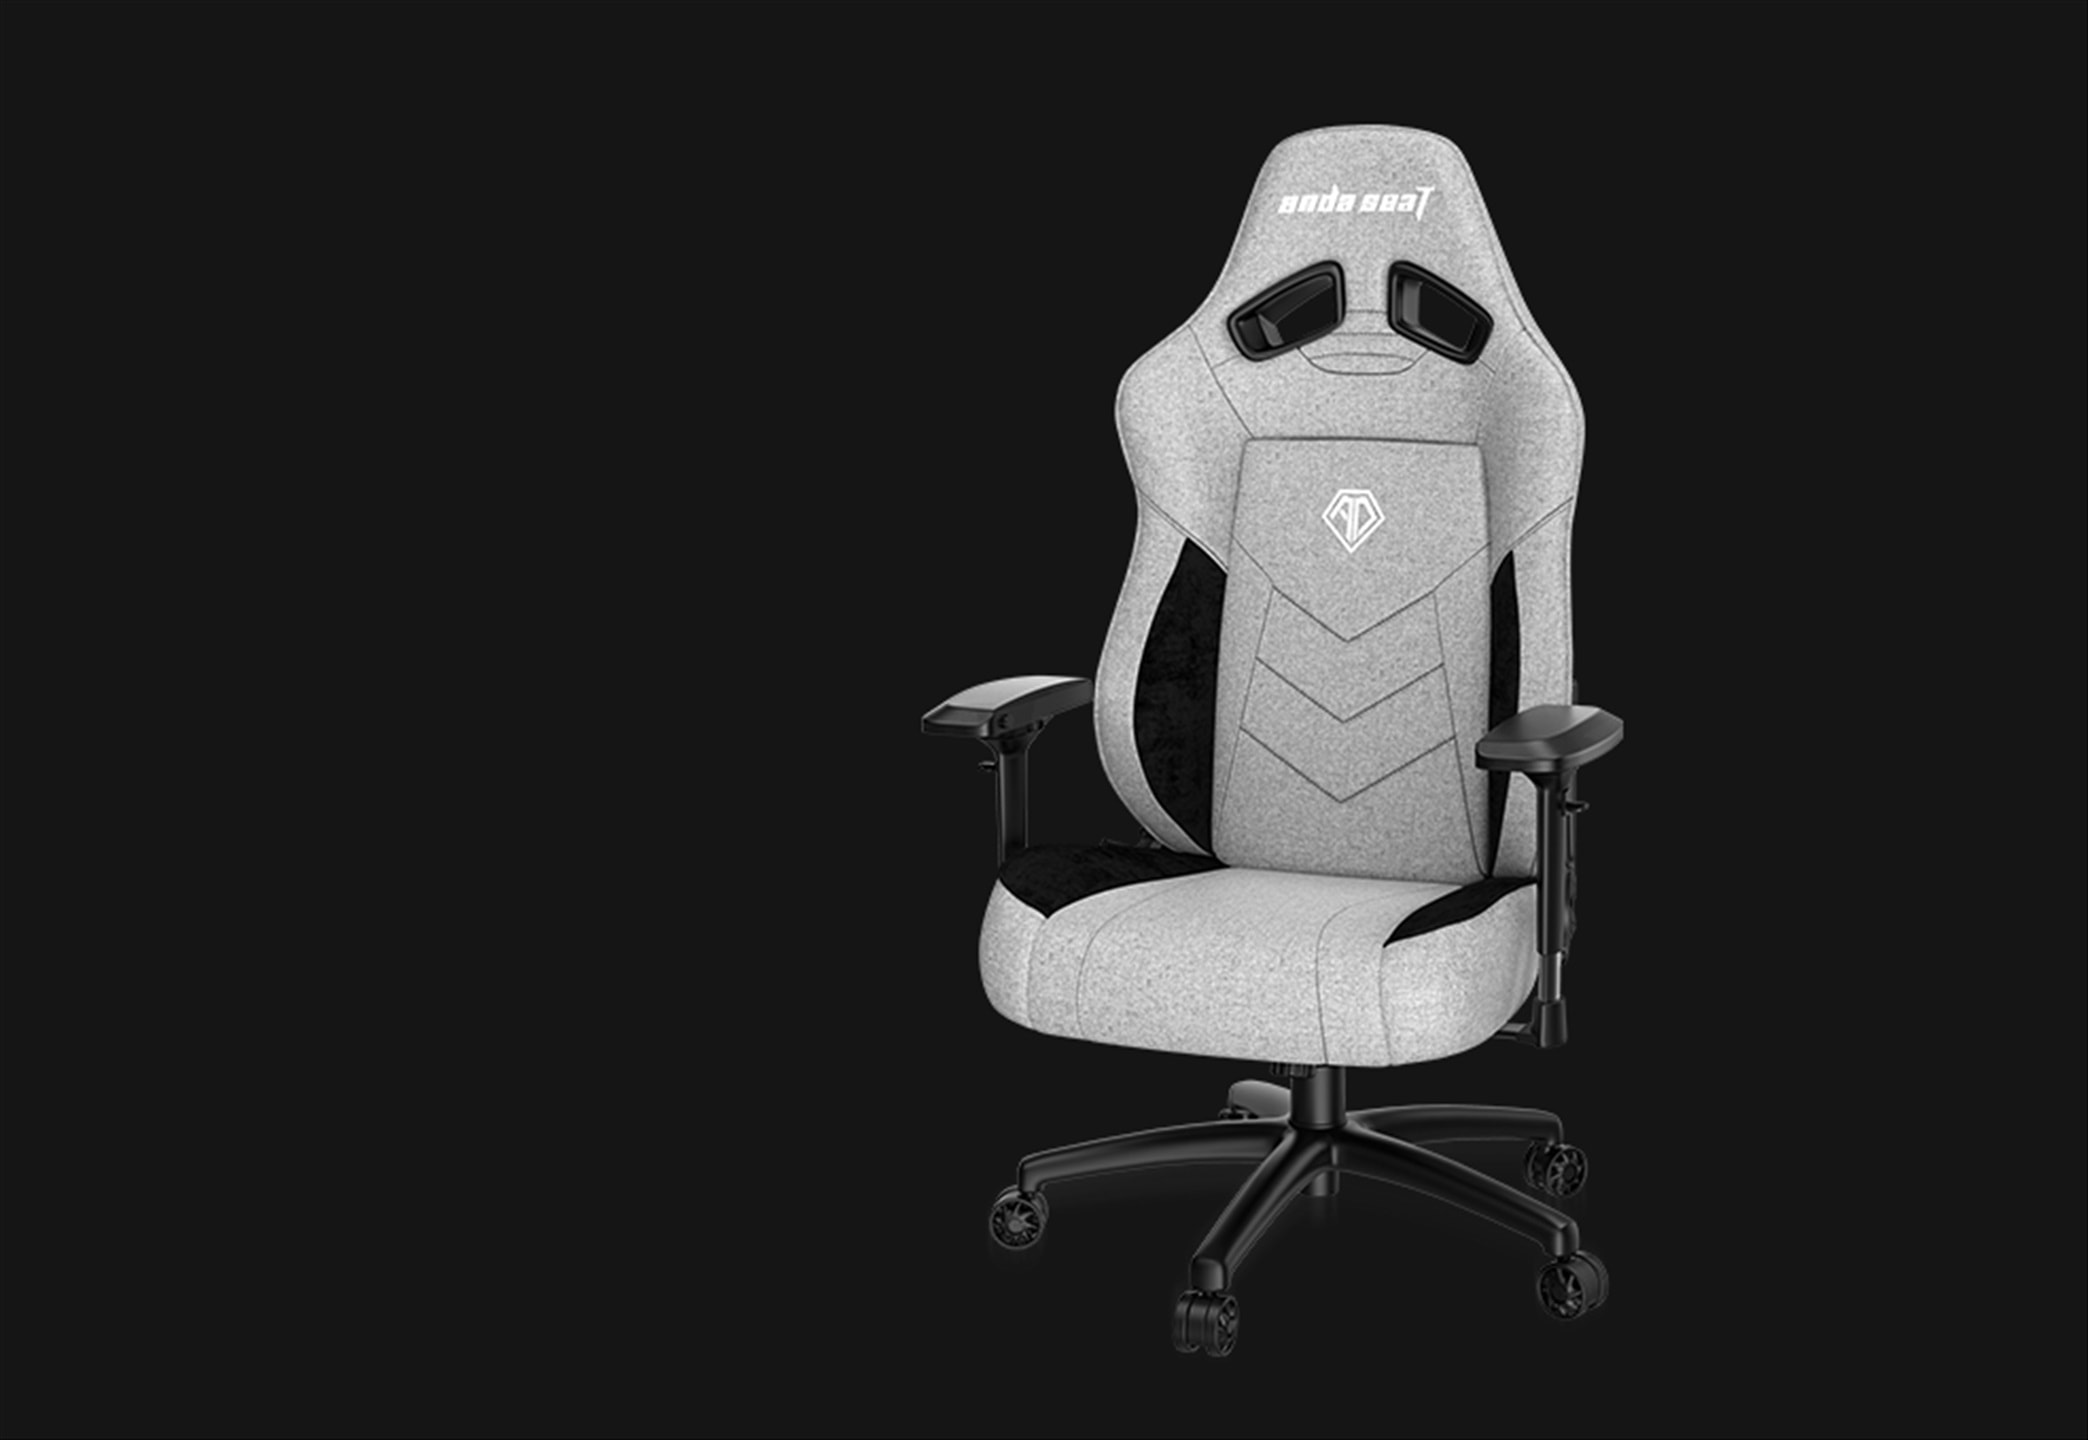 AndaSeat releases a more compact gaming chair